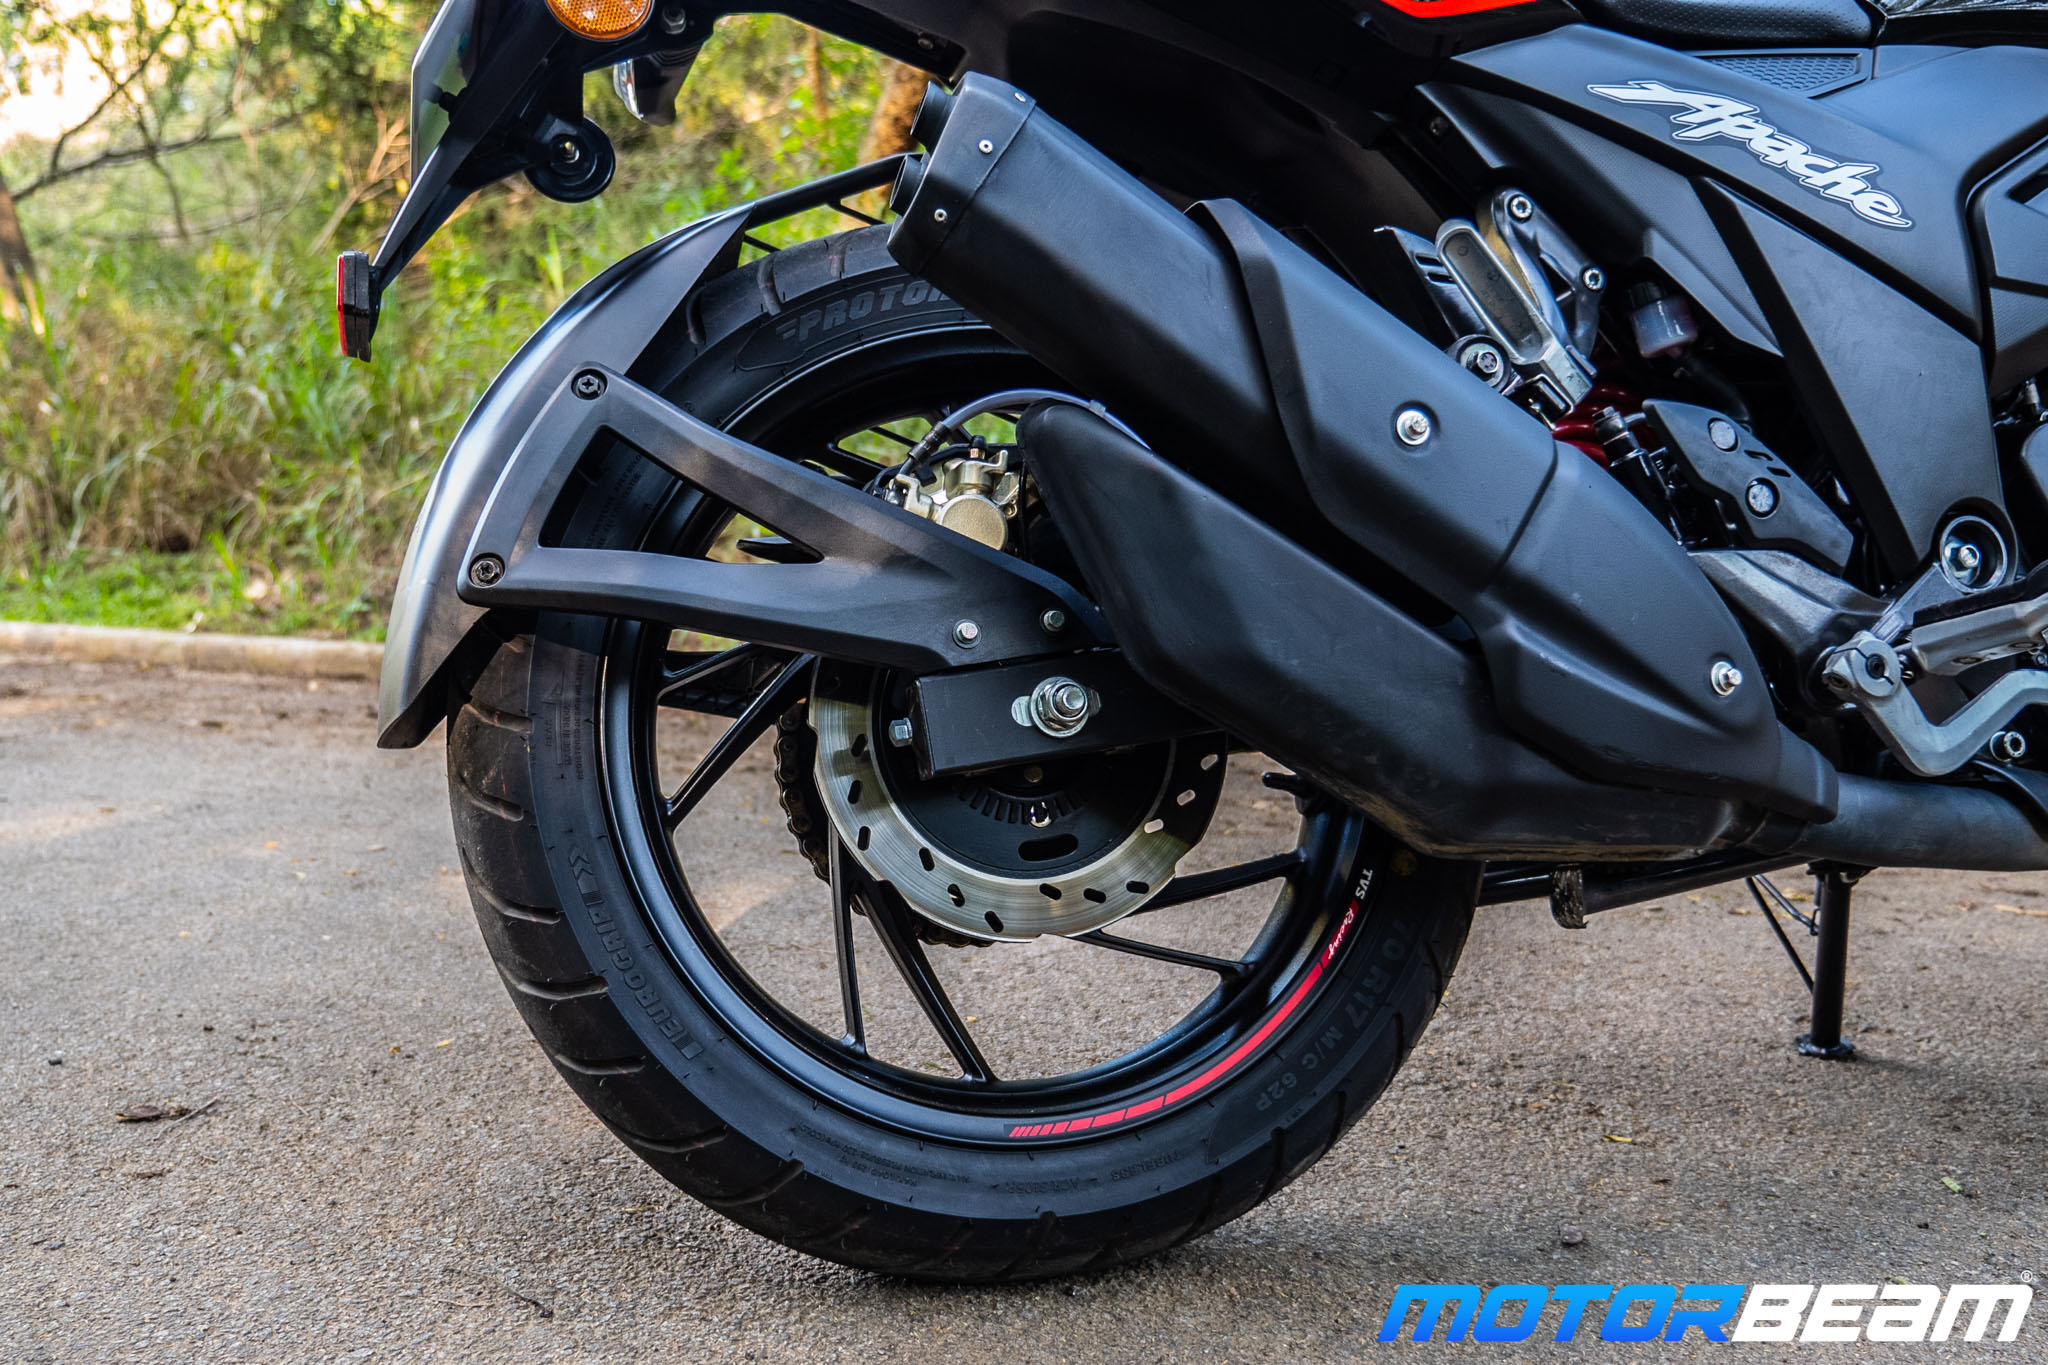 2020 TVS Apache 200 Review Exhaust